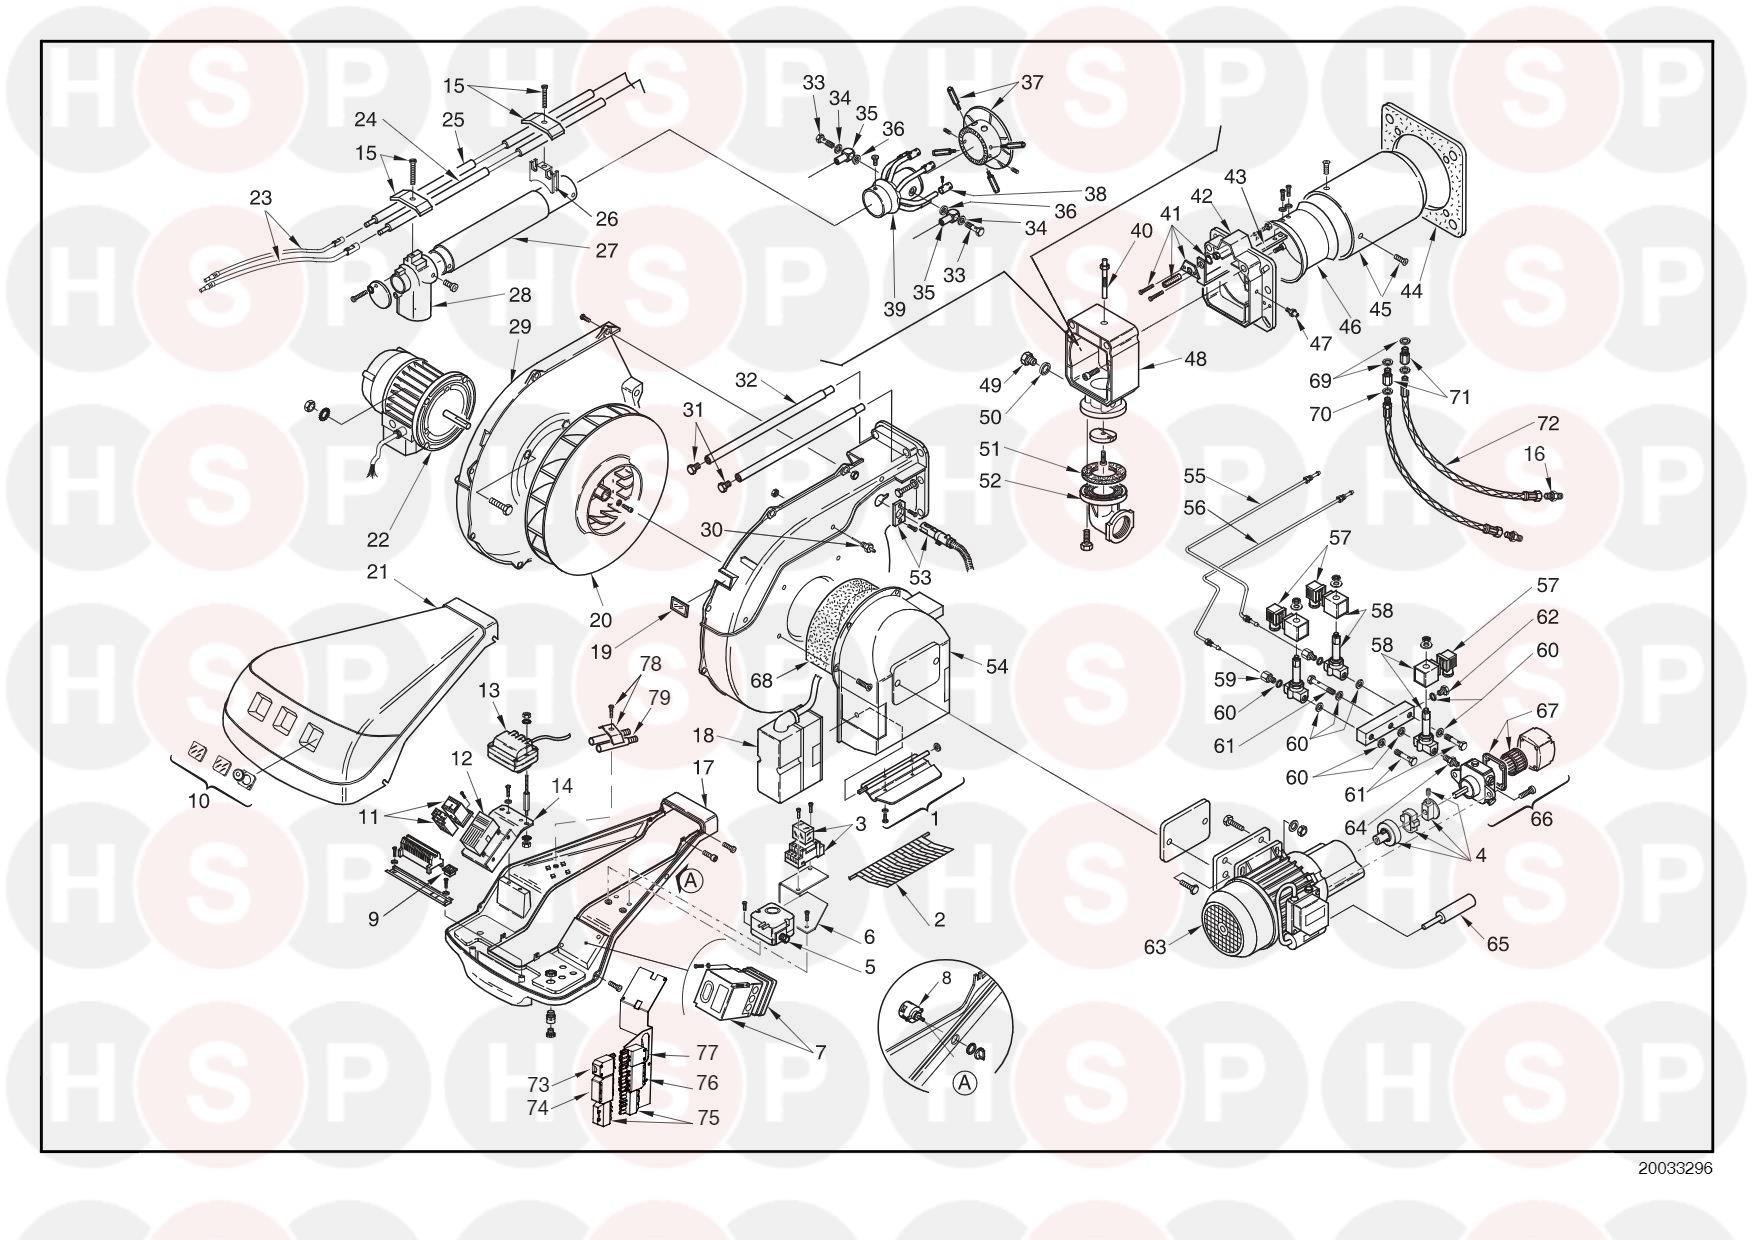 Riello Rls 70 20032836  Type 687 T1   Exploded View